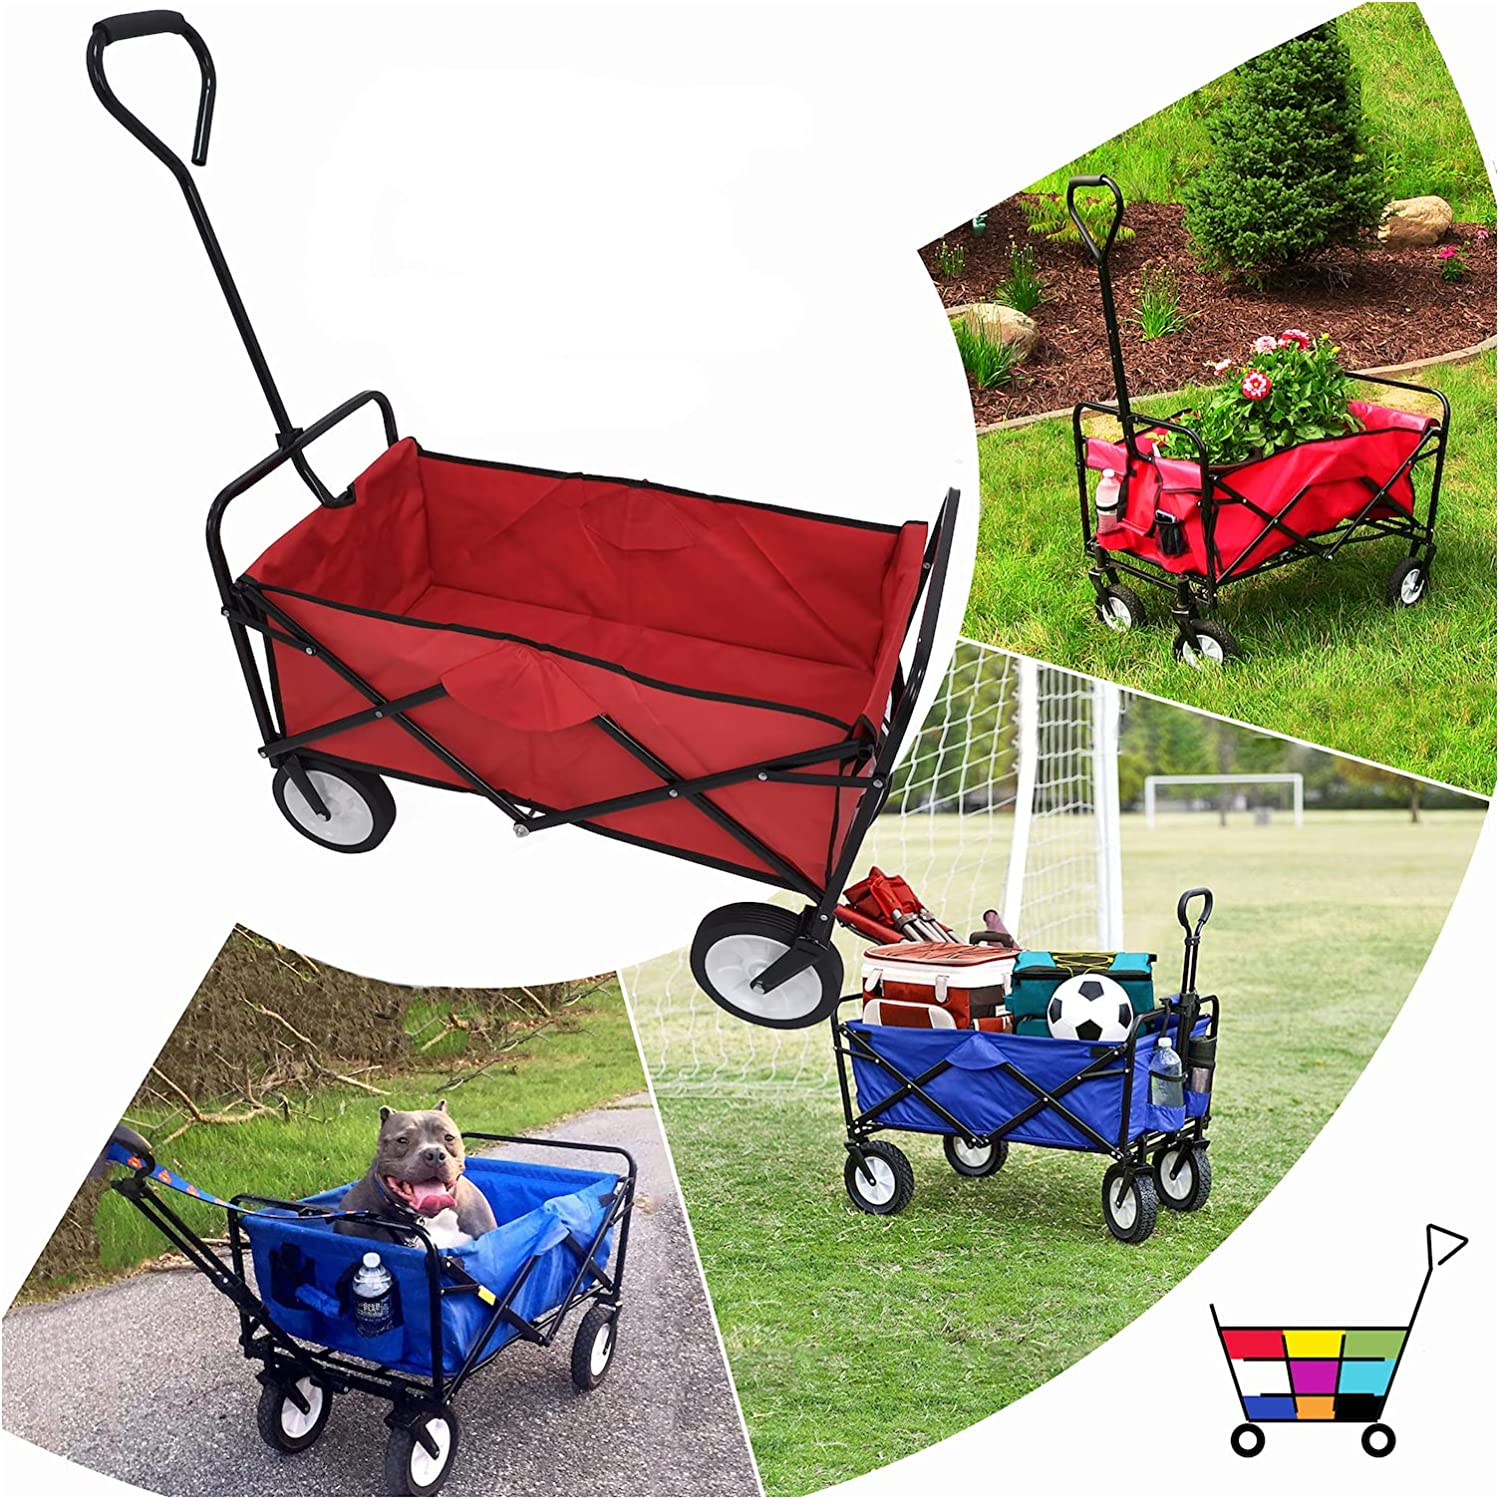 HTTMT- Red Multifunction Folding Wagon Cart Import Outdoor Portable Whe Ranking TOP16